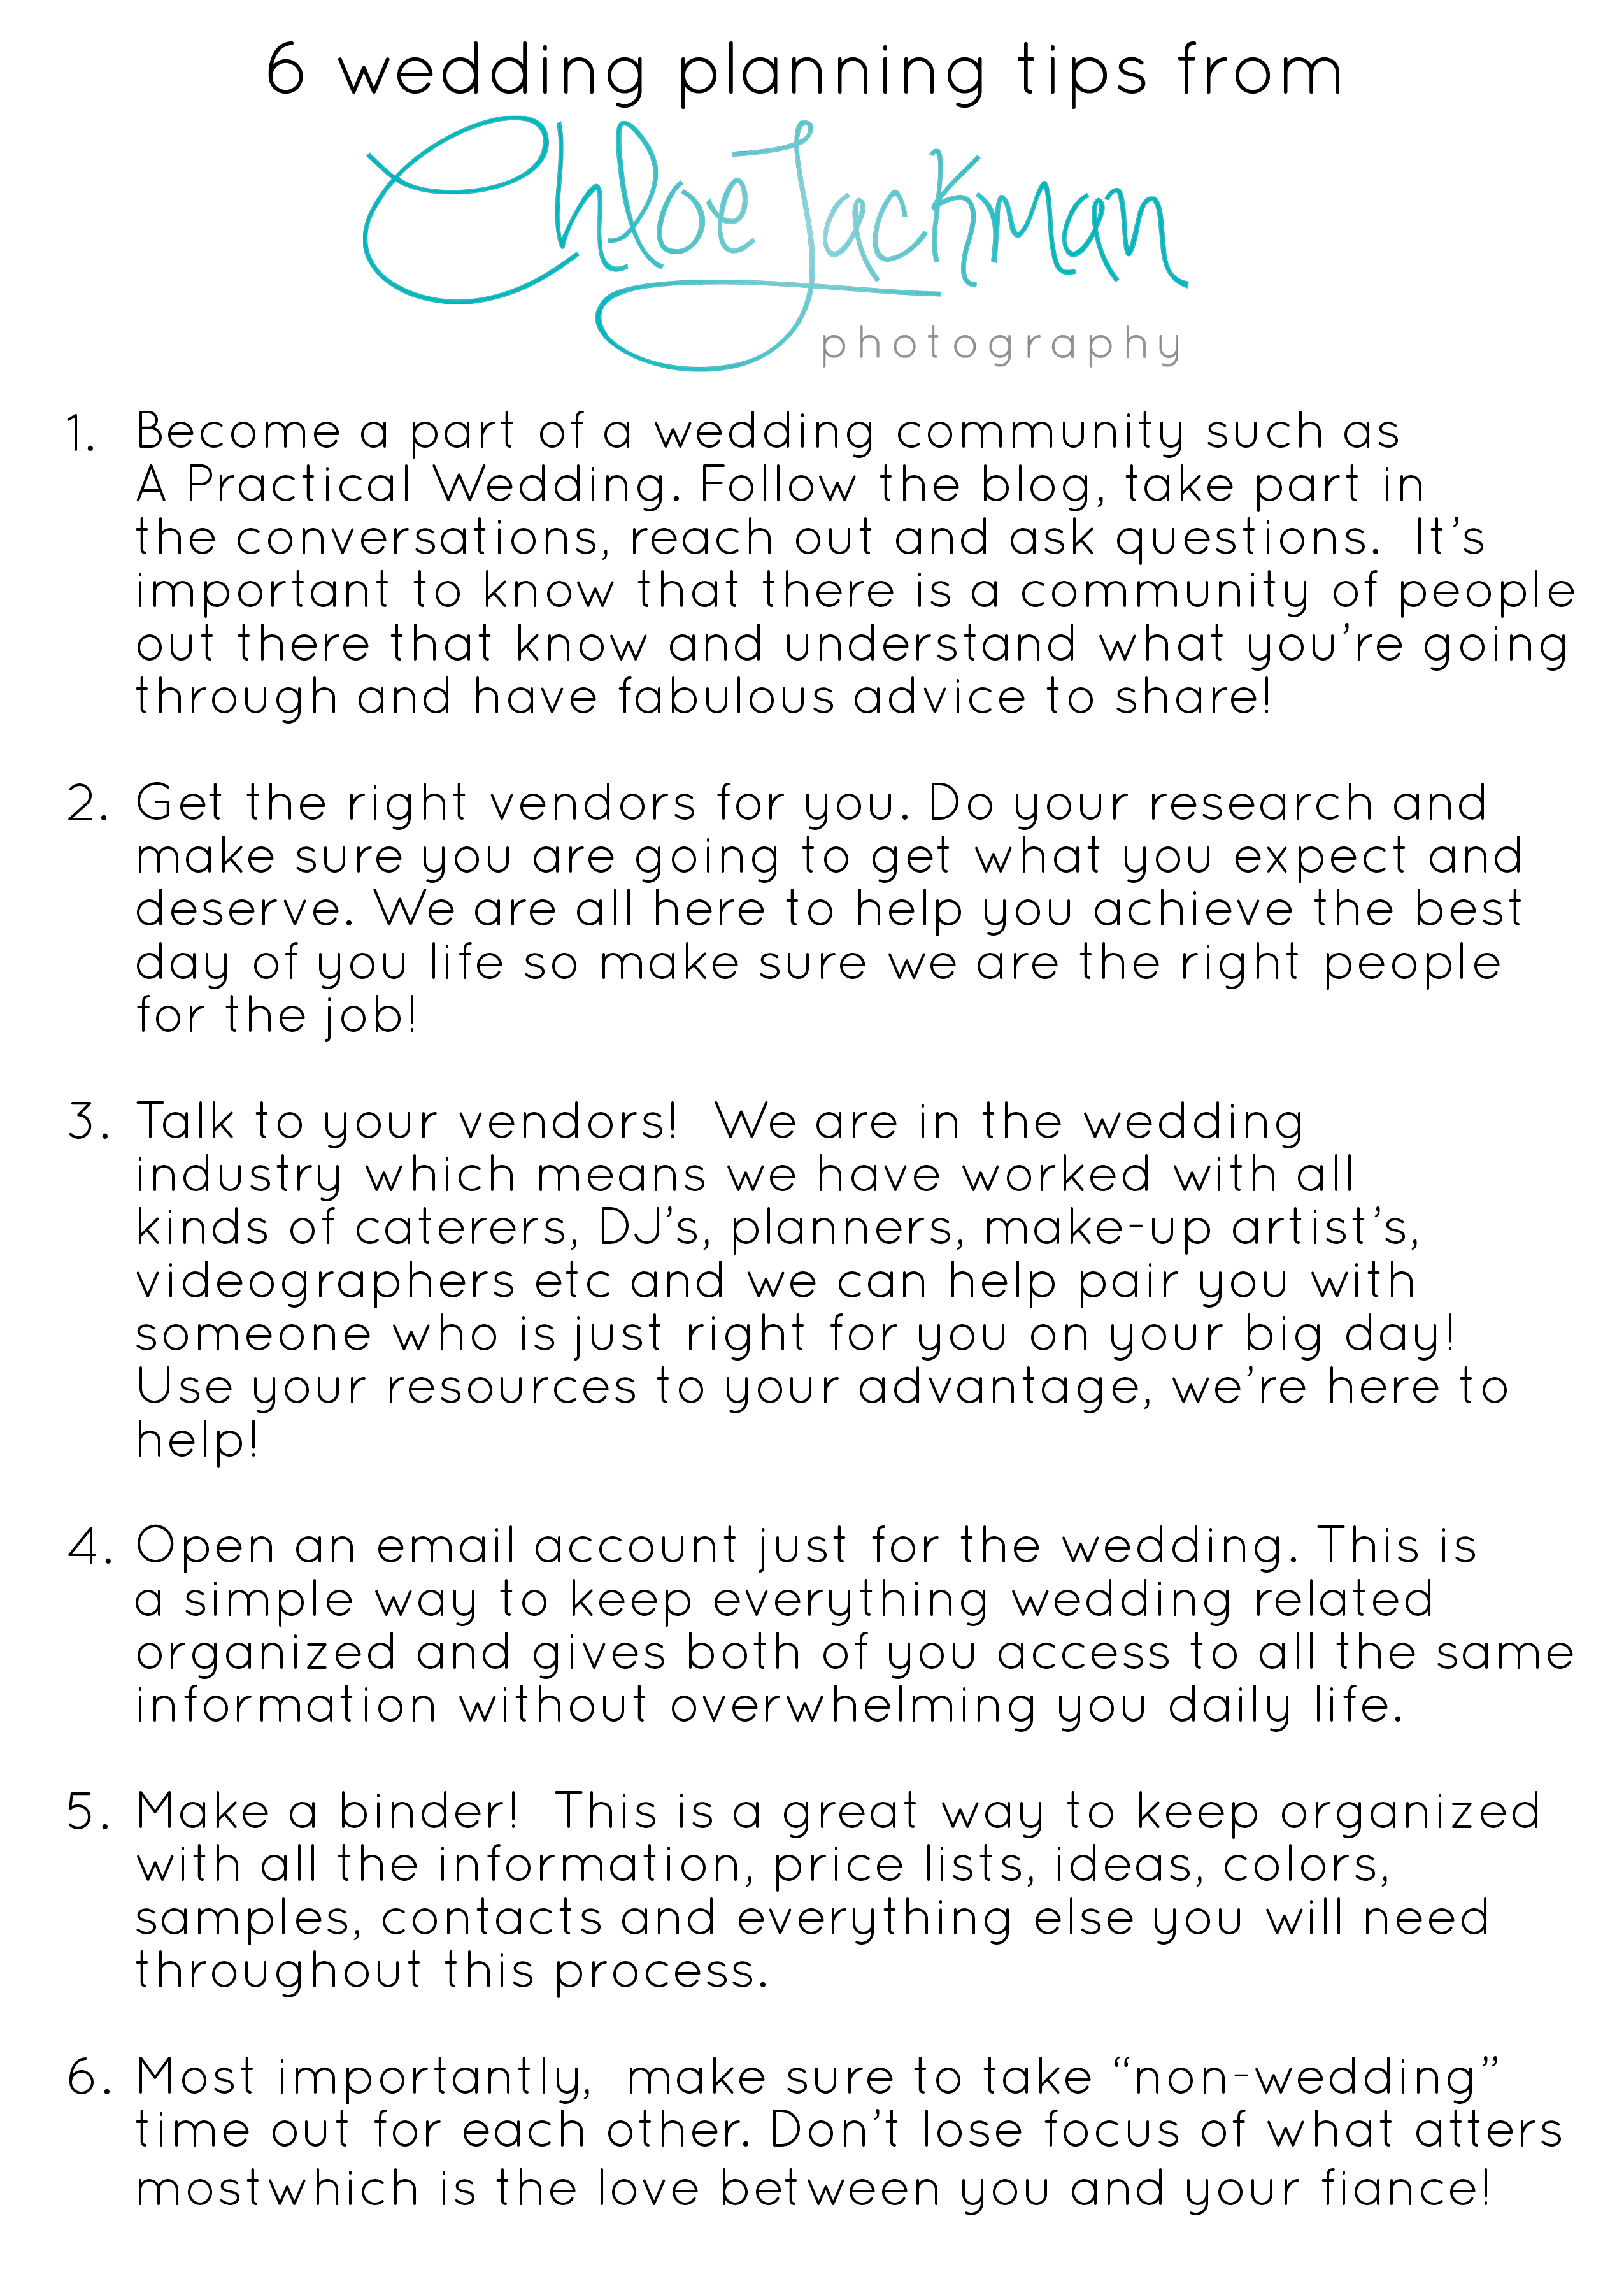 6 tips for planning your wedding Chloe Jackman Photography